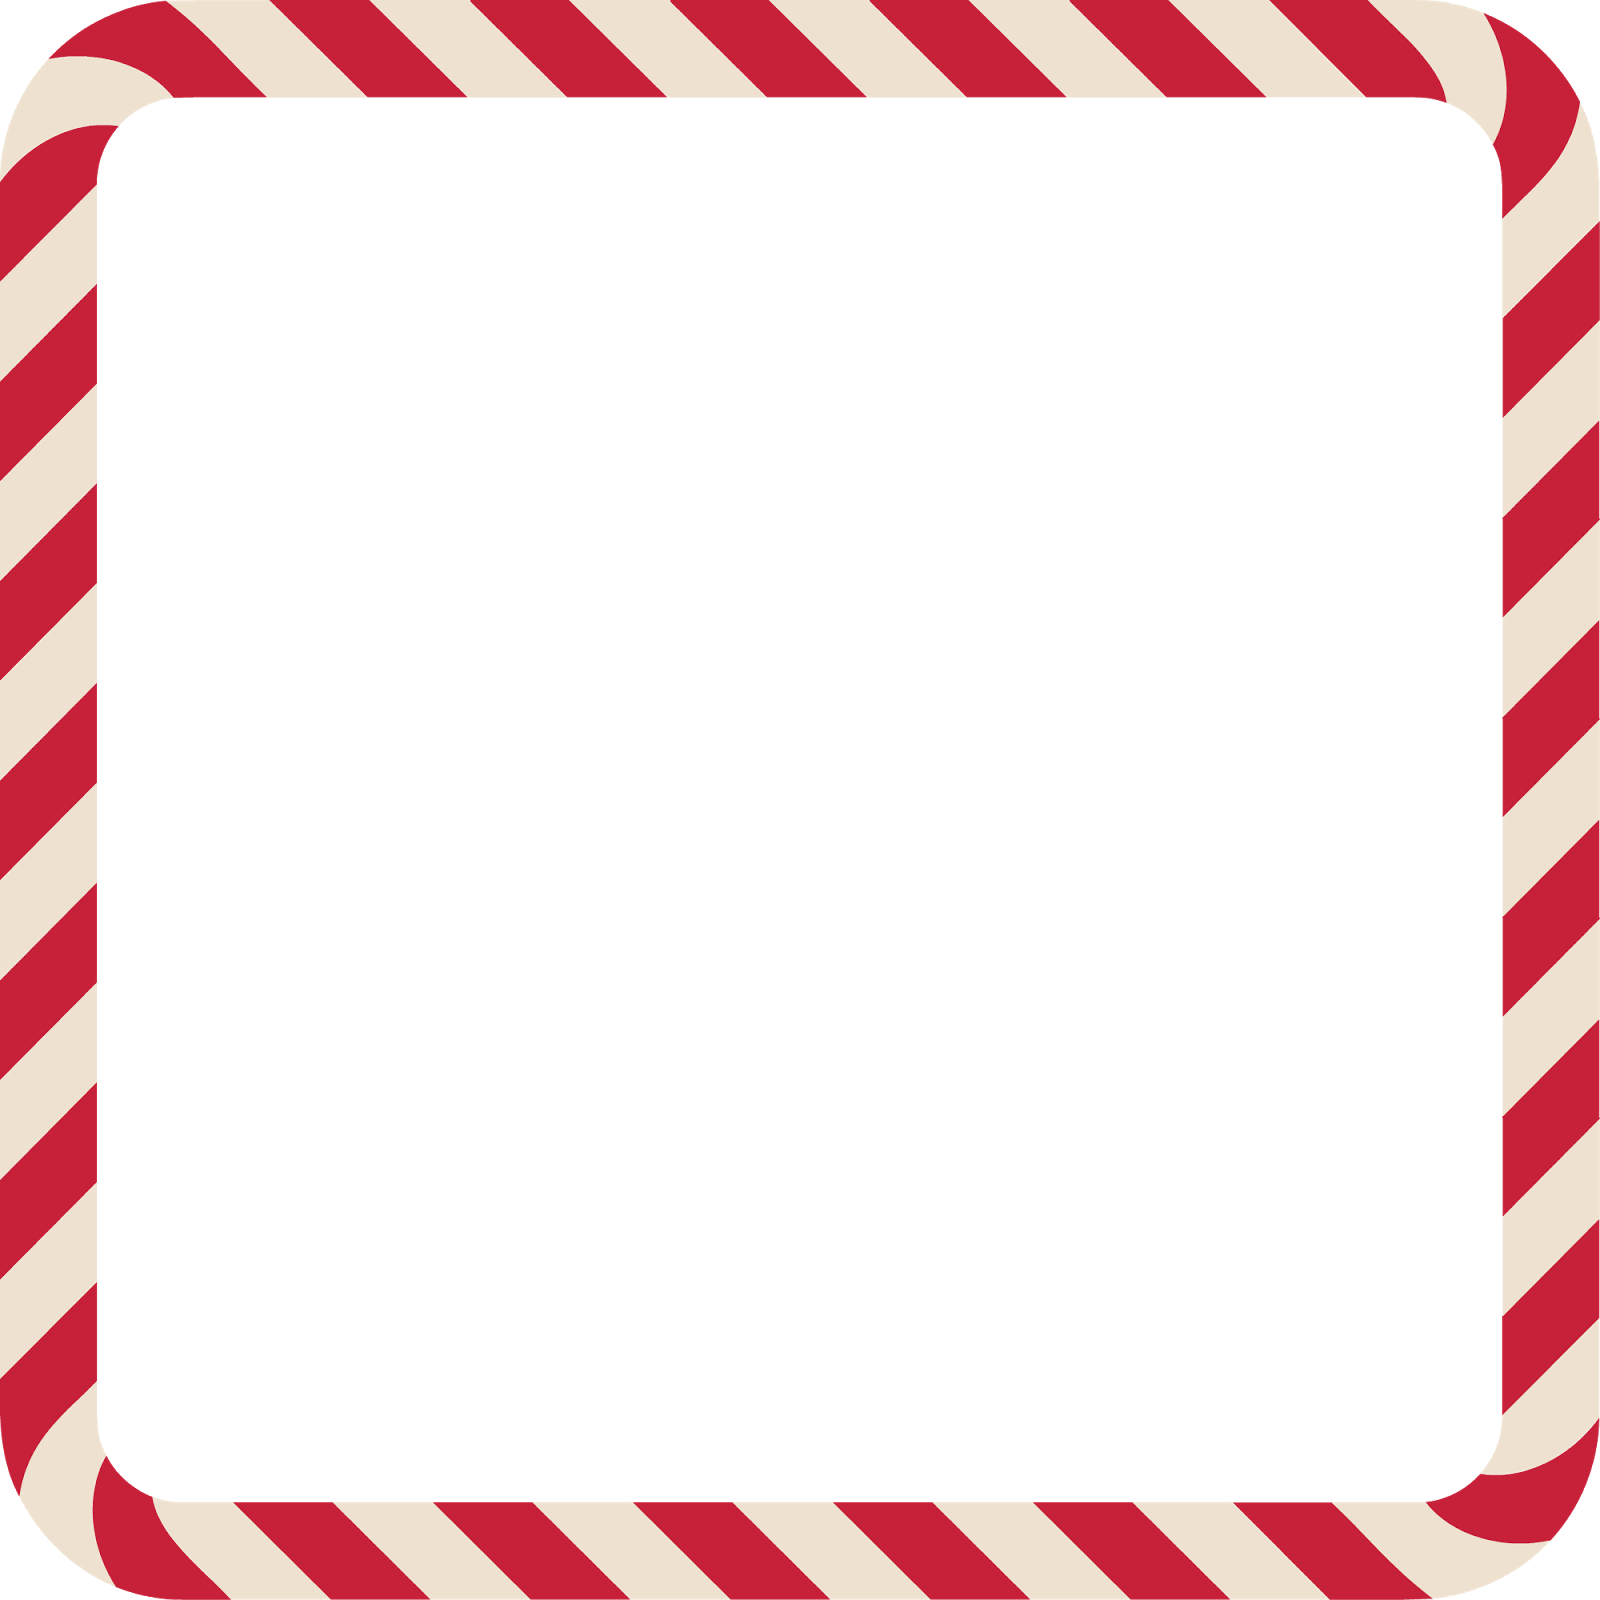 Candy cane border png.  for free download